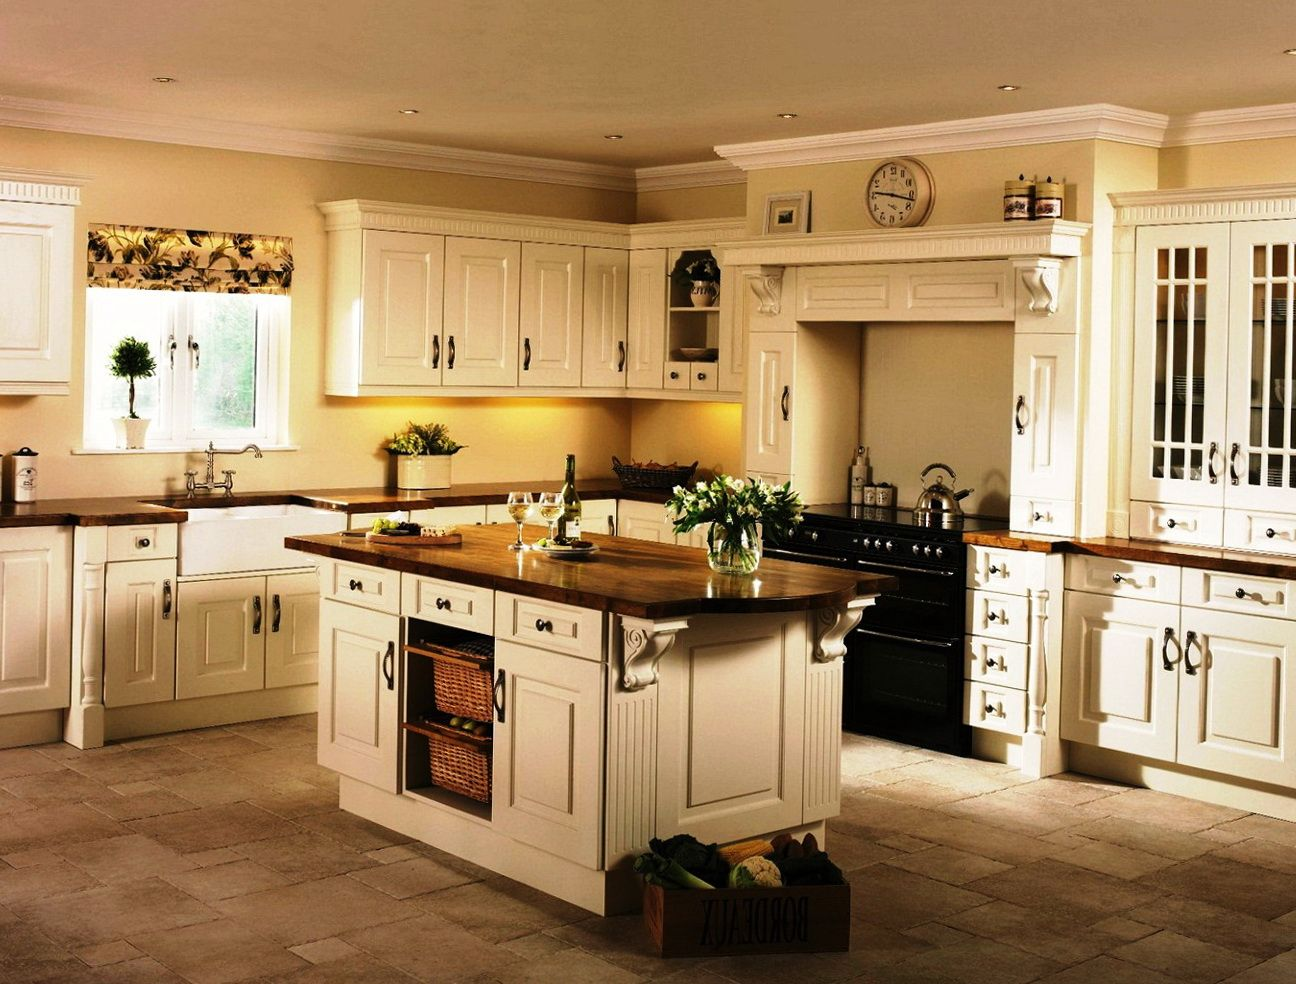 Best Cream Kitchen Cabinets What Colour Walls Kitchen Rehab 400 x 300